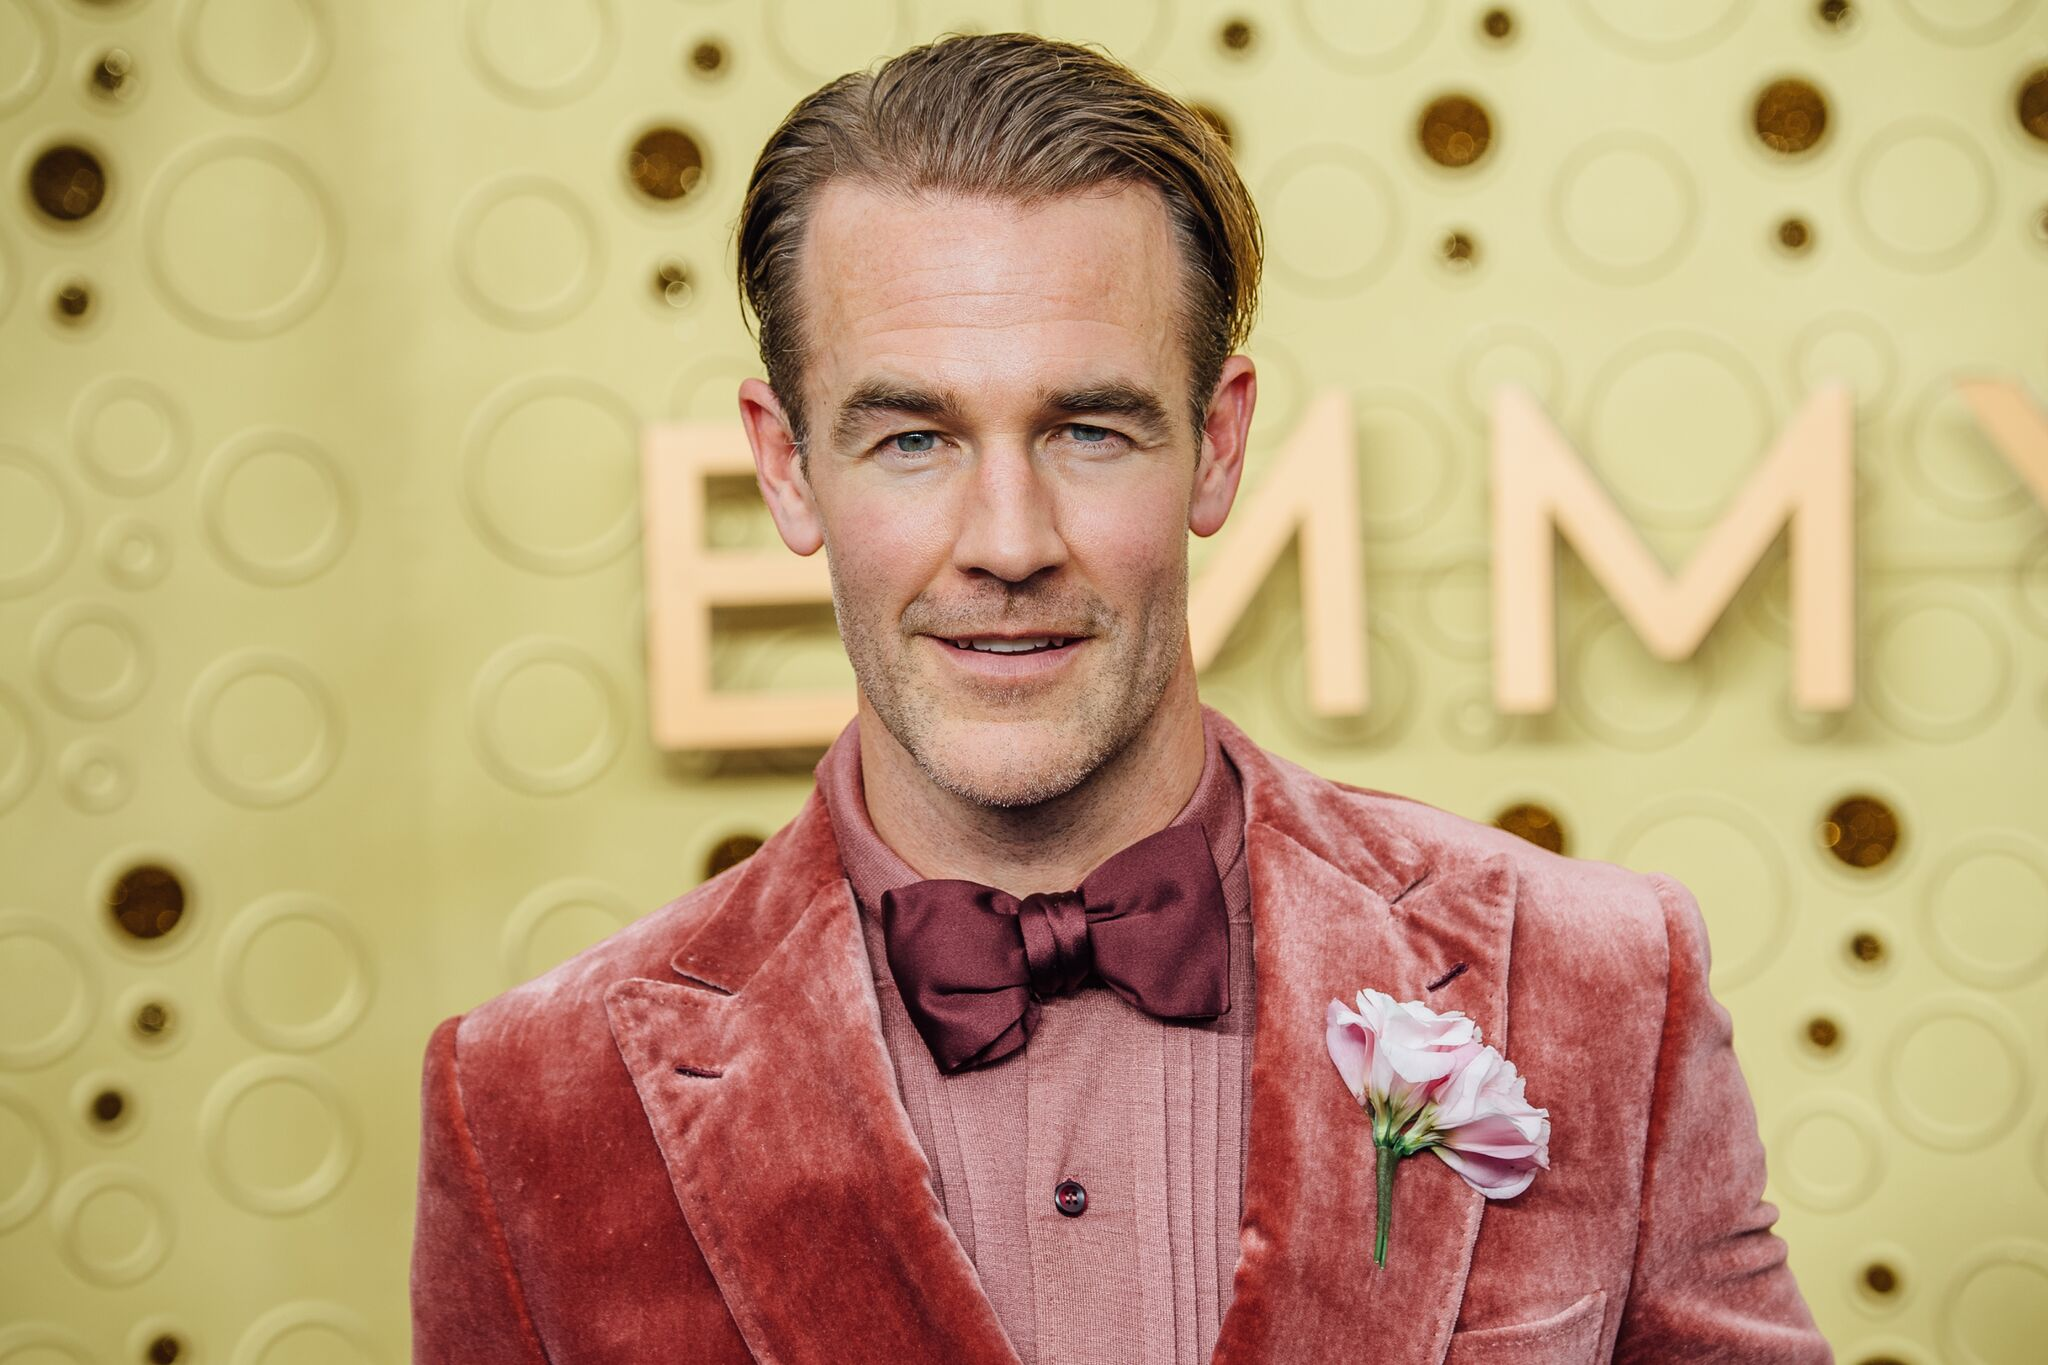 James Van der Beek arrives at the 71st Emmy Awards at Microsoft Theater on September 22, 2019 | Source: Getty Images